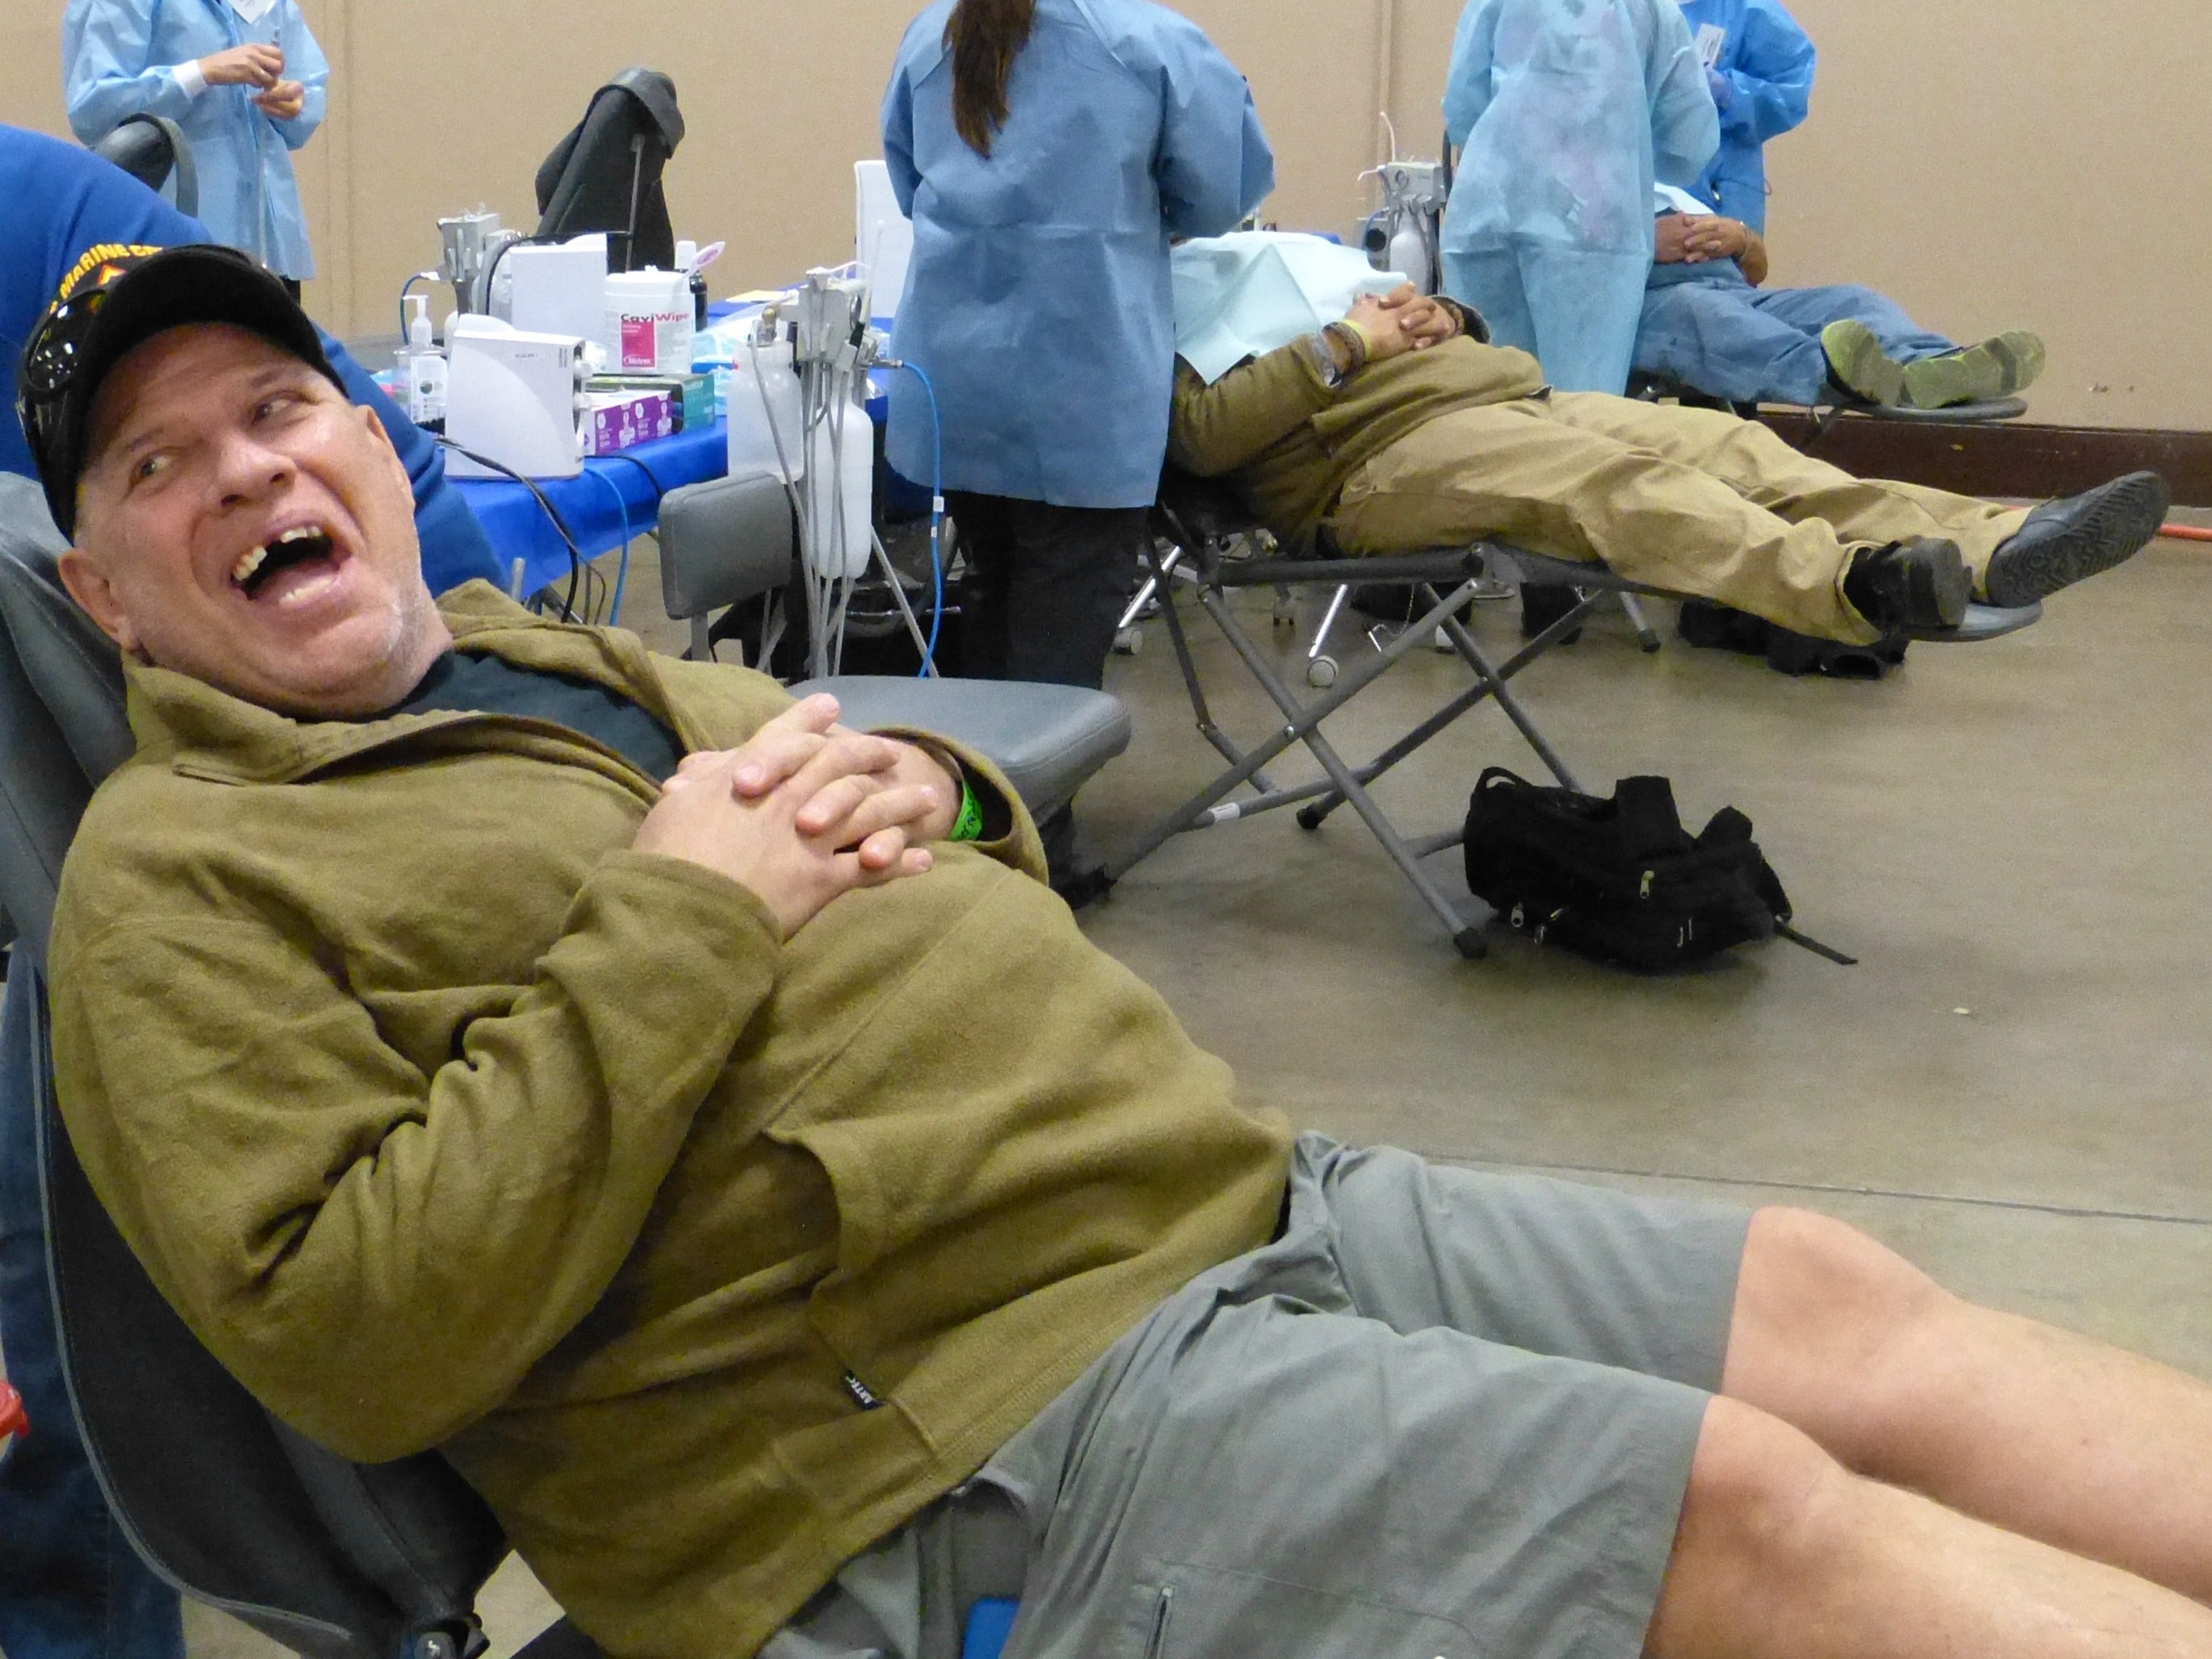 Fifty-six-year-old Steve Bidwell, a U.S. Marine Corps veteran, was in good spirits Friday before having dental work at the North Valley Stand Down.